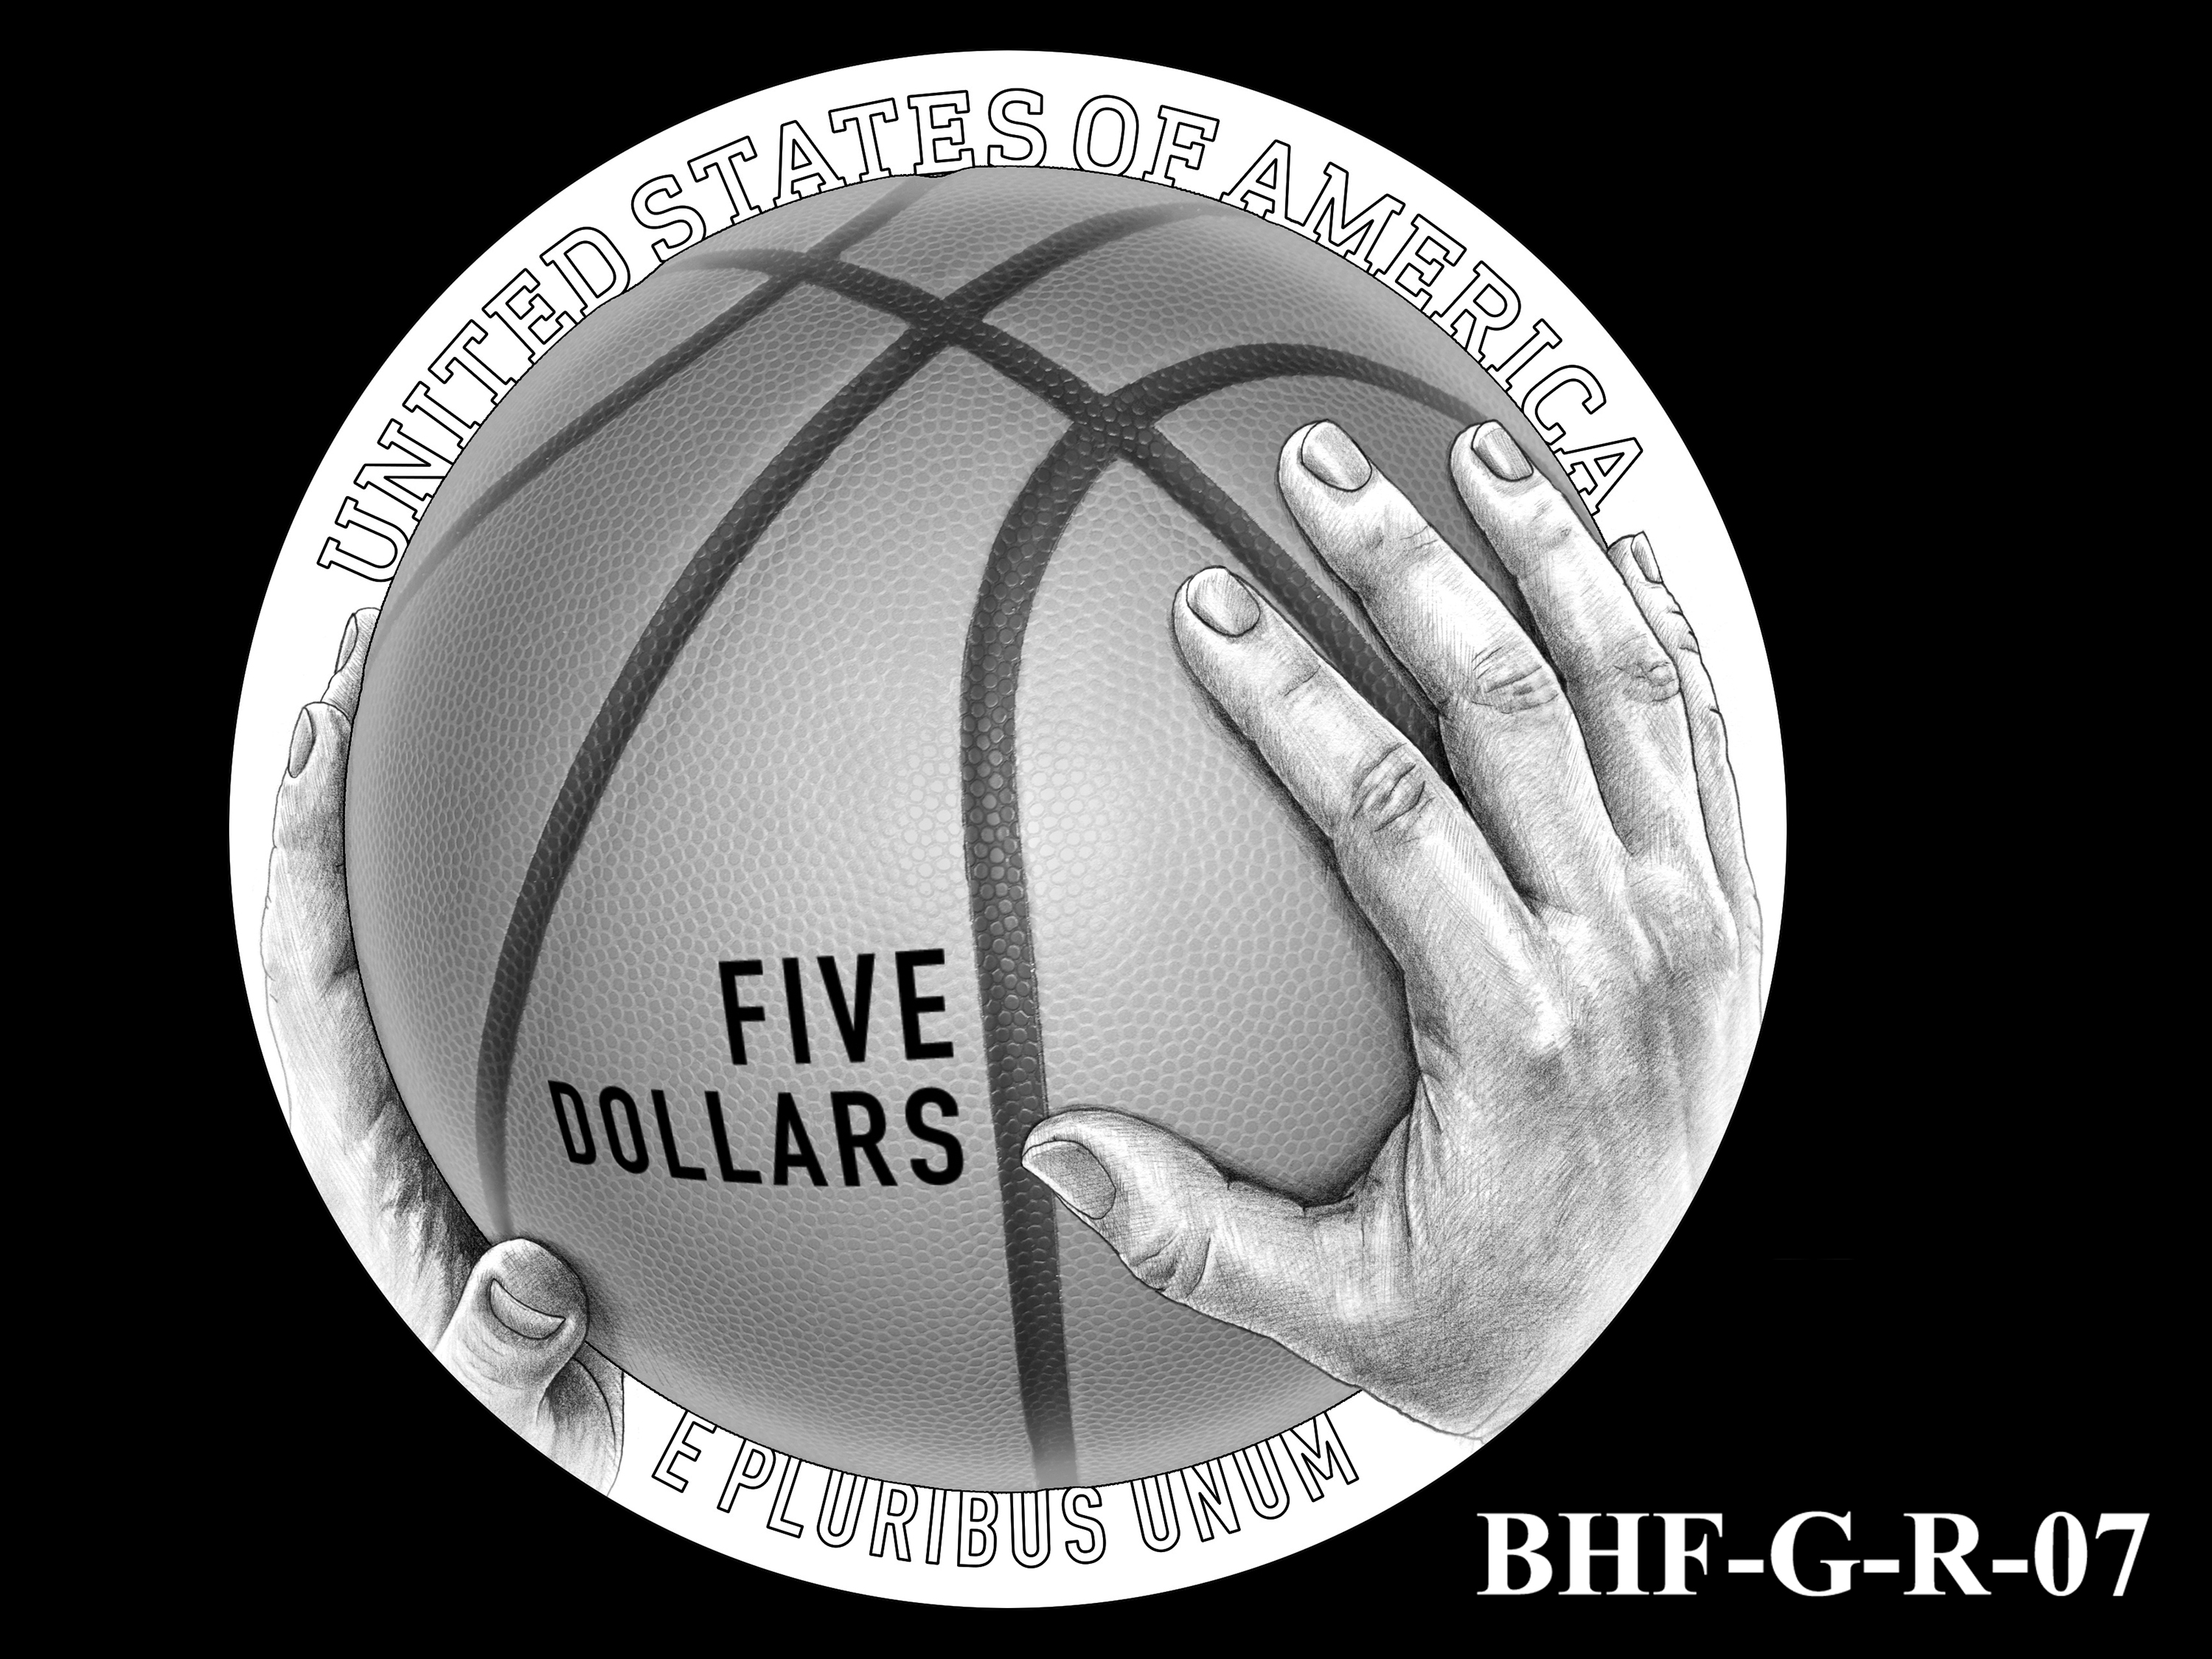 BHF-G-R-07 -- 2020 Basketball Hall of Fame Commemorative Coin Program - Gold Reverse